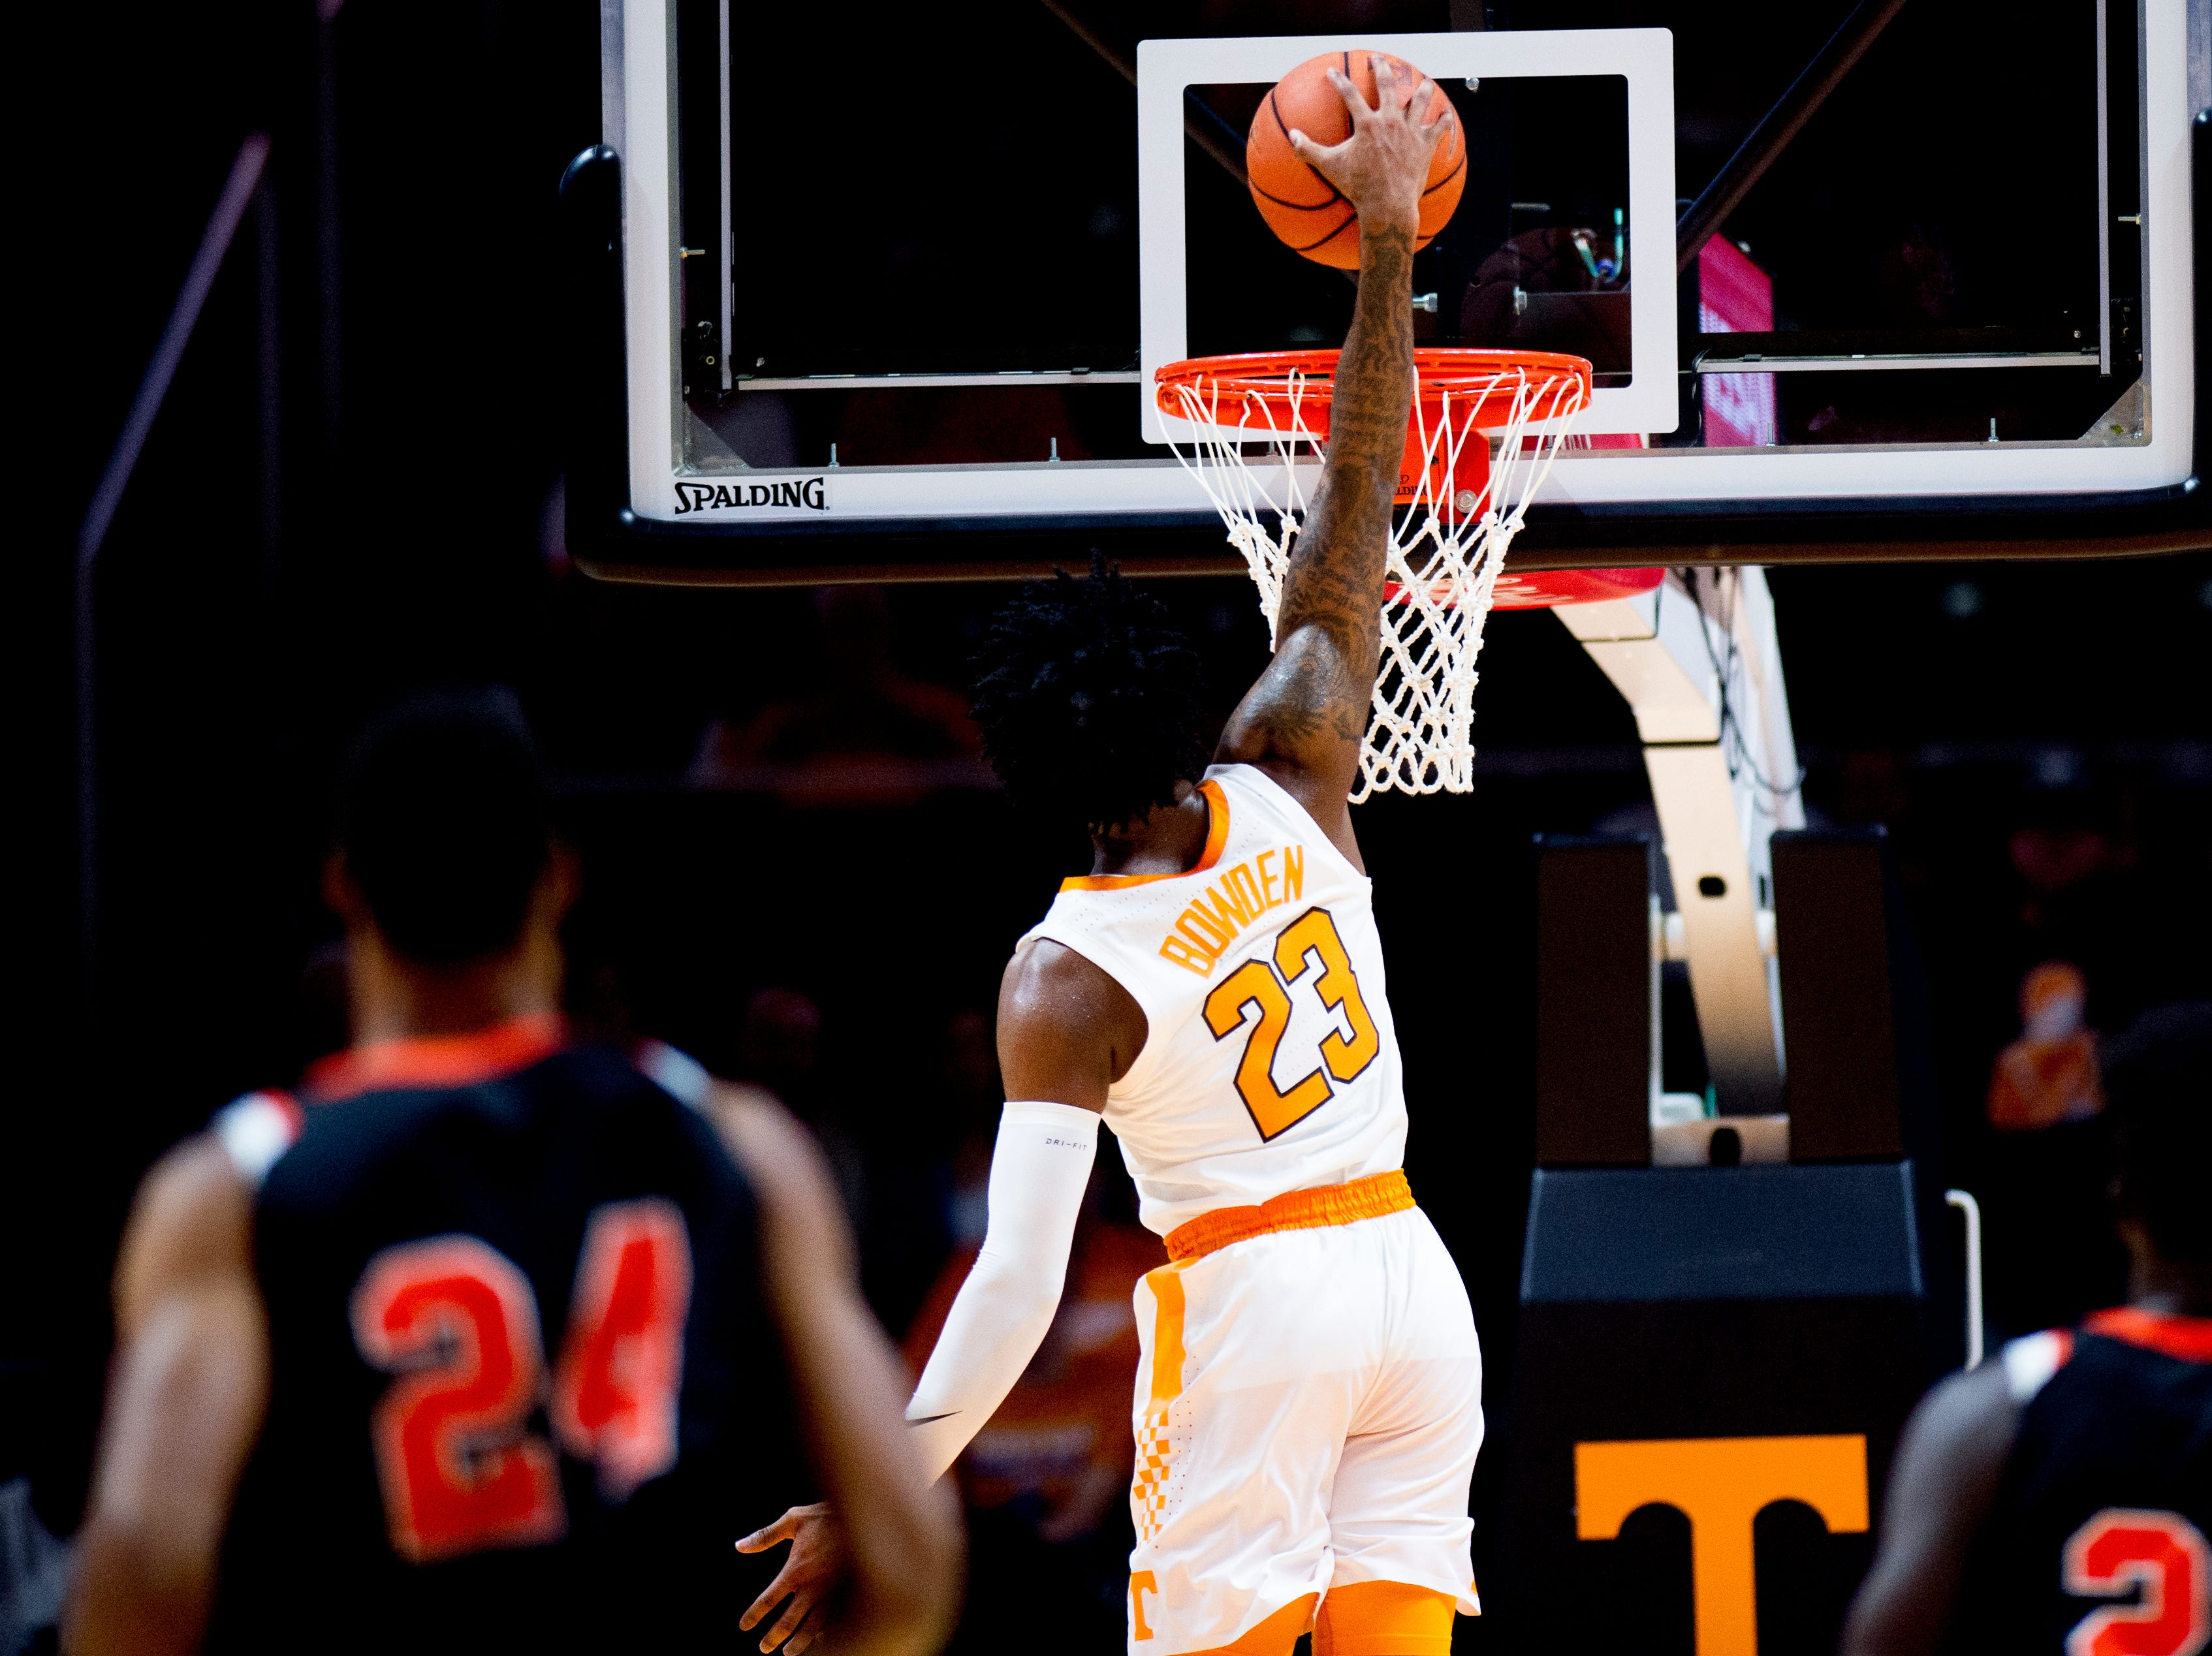 Tennessee guard Jordan Bowden (23) dunks during a game between Tennessee and Tusculum at Thompson-Boling Arena in Knoxville, Tennessee on Wednesday, October 31, 2018.